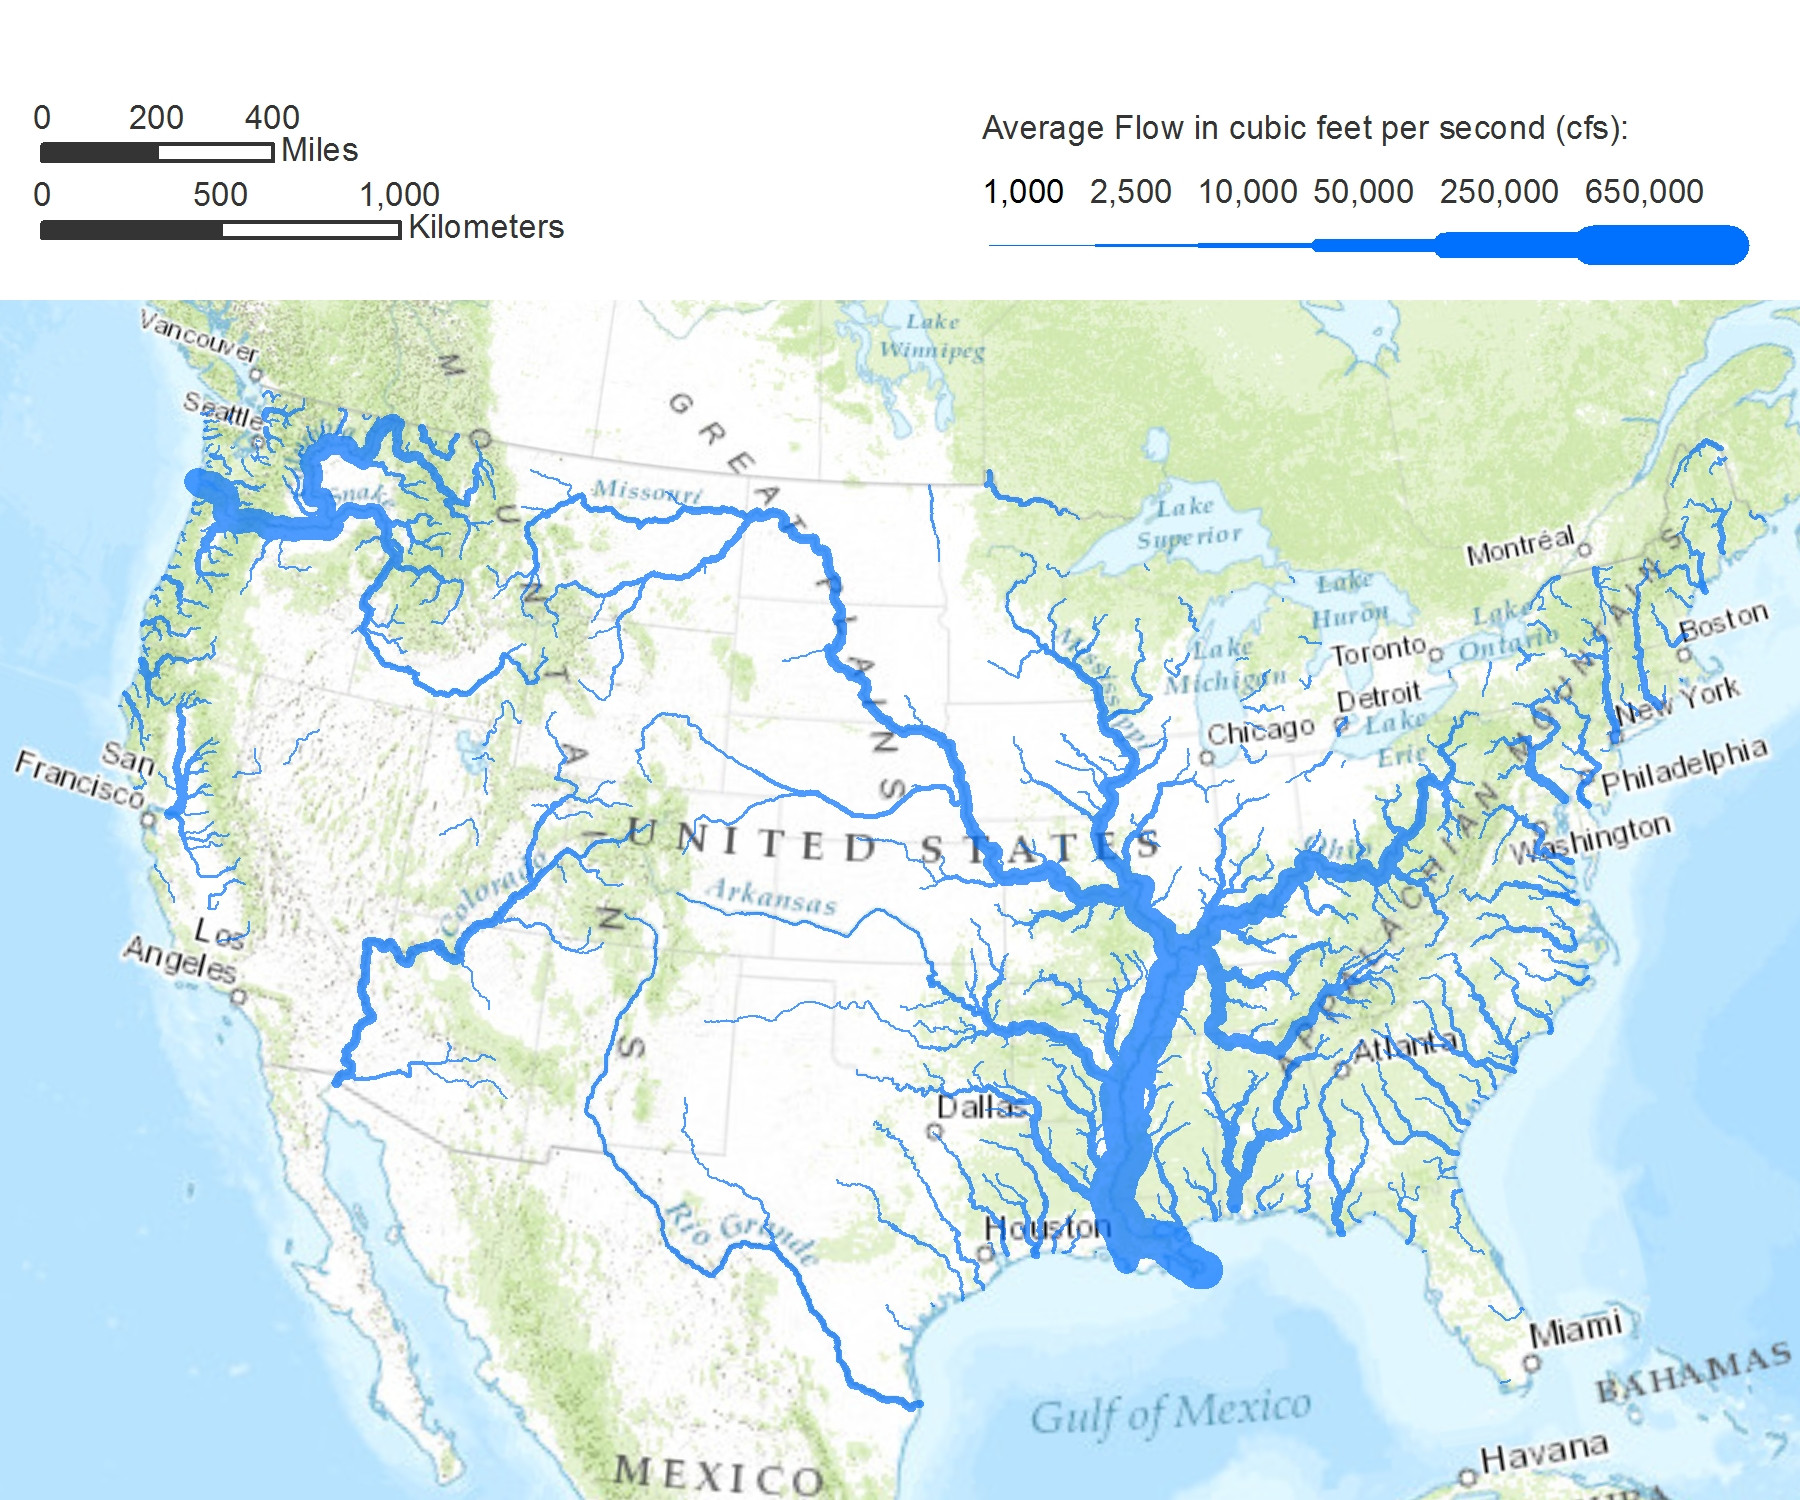 Outline Map Of The USA With States And Rivers US Rivers Map Maps - Map of northwest us rivers